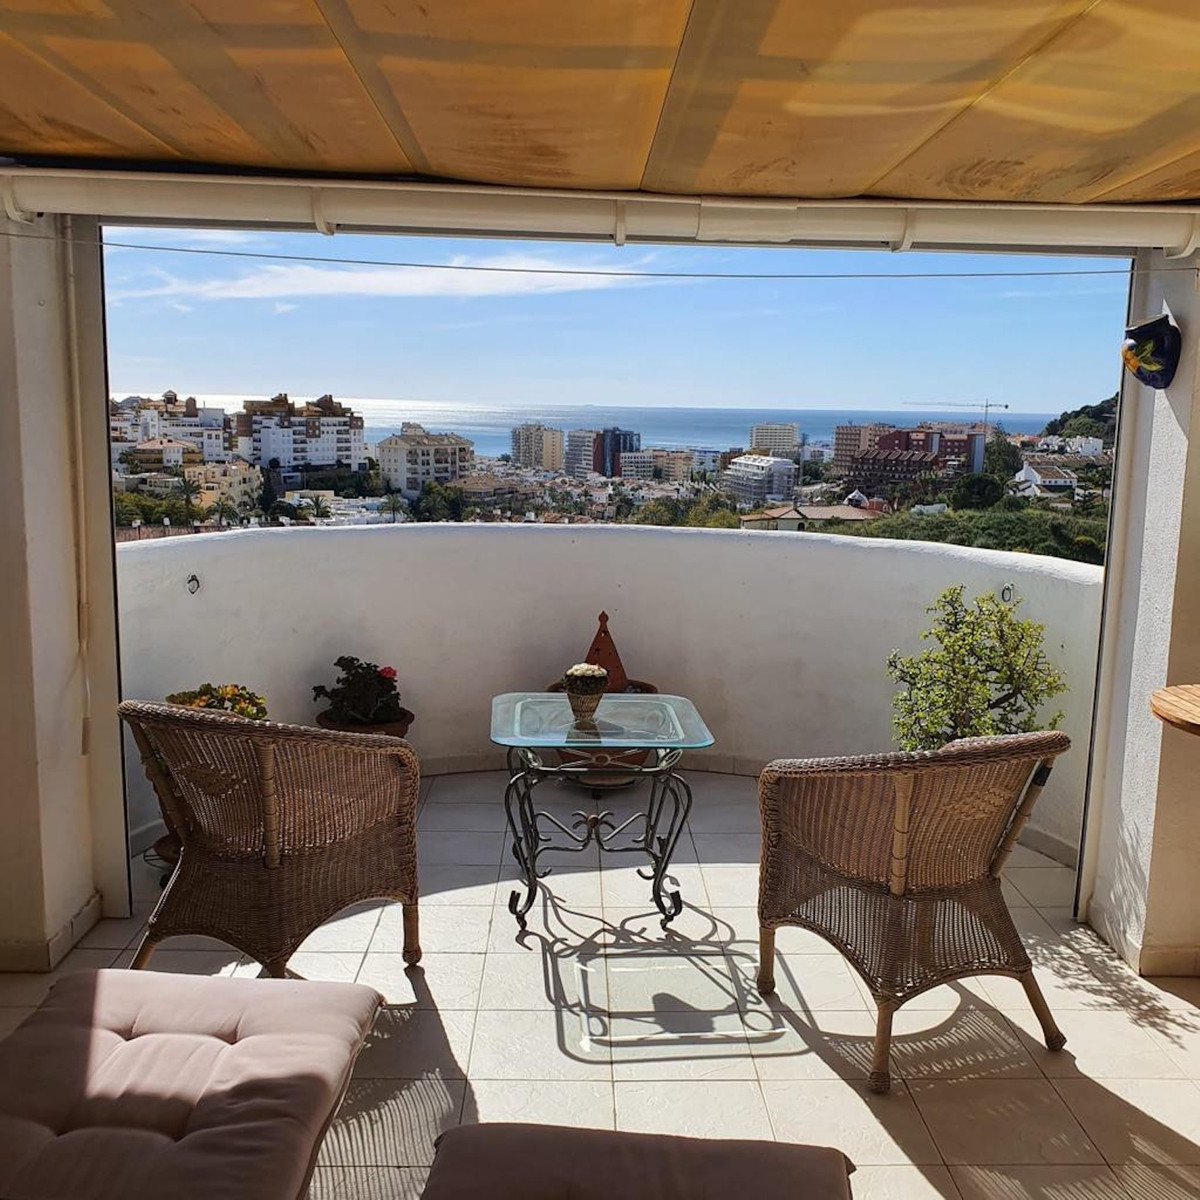 Lovely 2 bedroom apartment in Arroyo de la Miel with views of the Mediterranean. With lots of natura,Spain